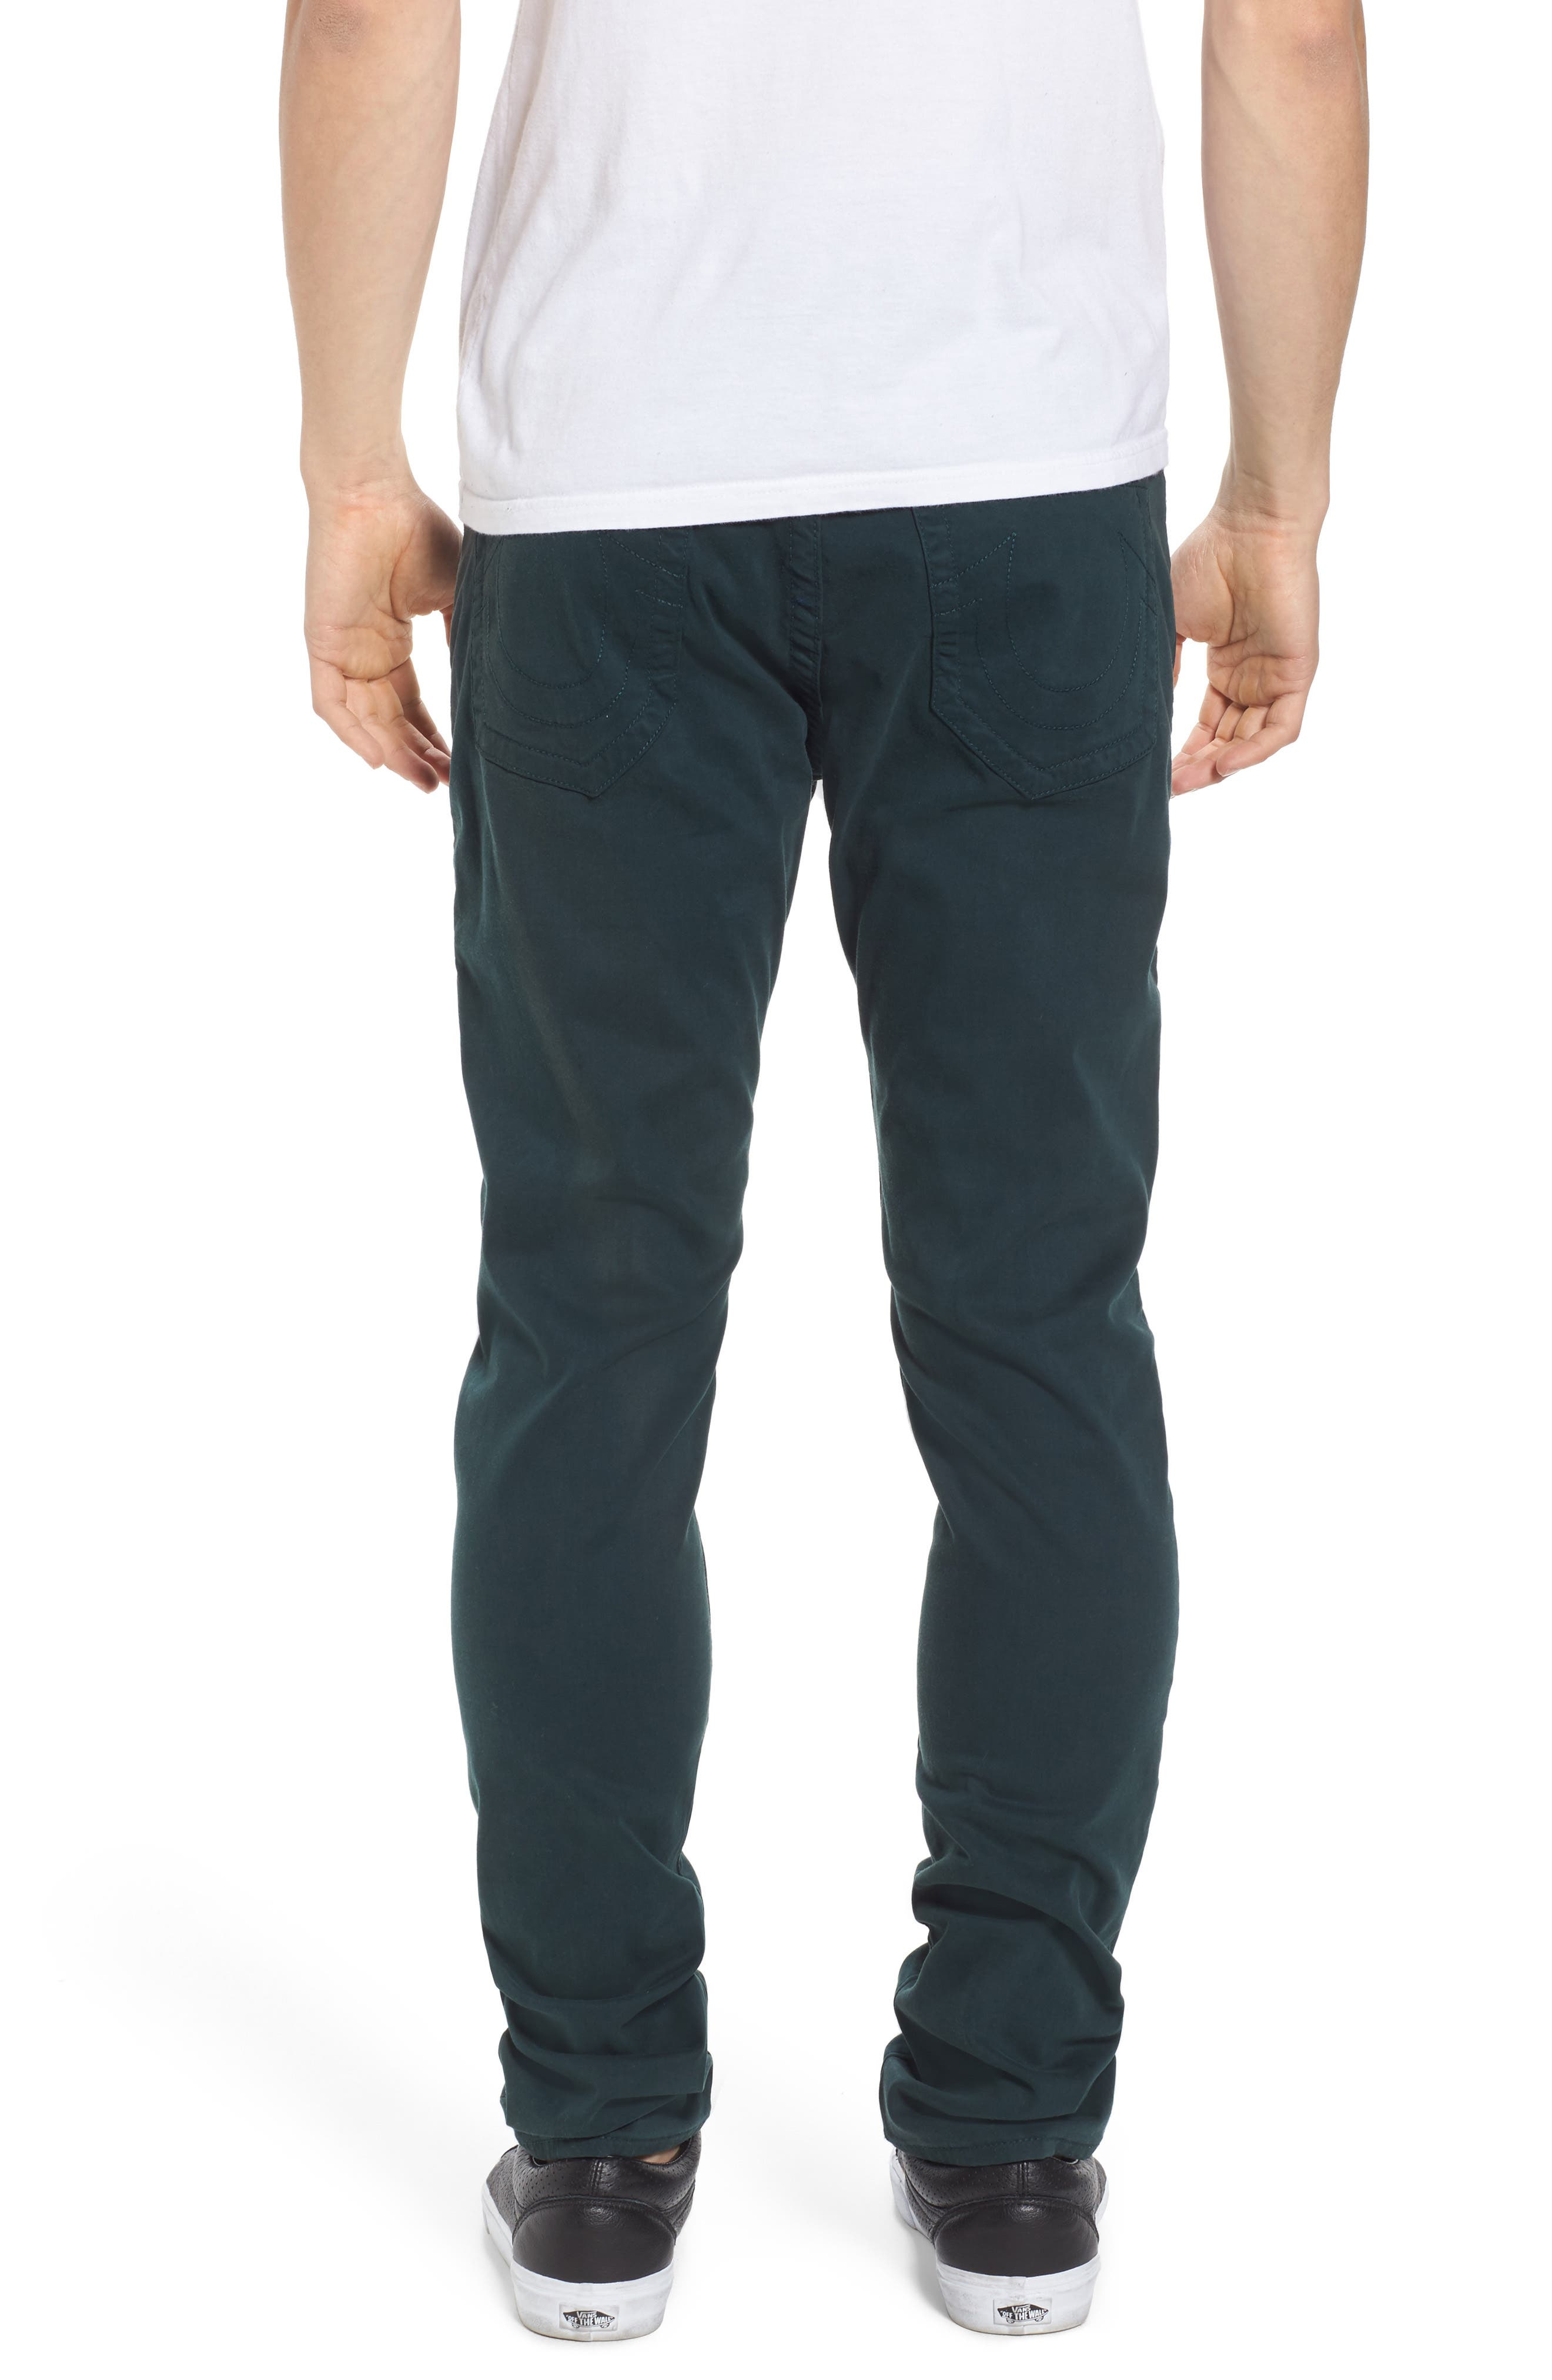 Rocco Skinny Fit Jeans,                             Alternate thumbnail 2, color,                             Hunter Green